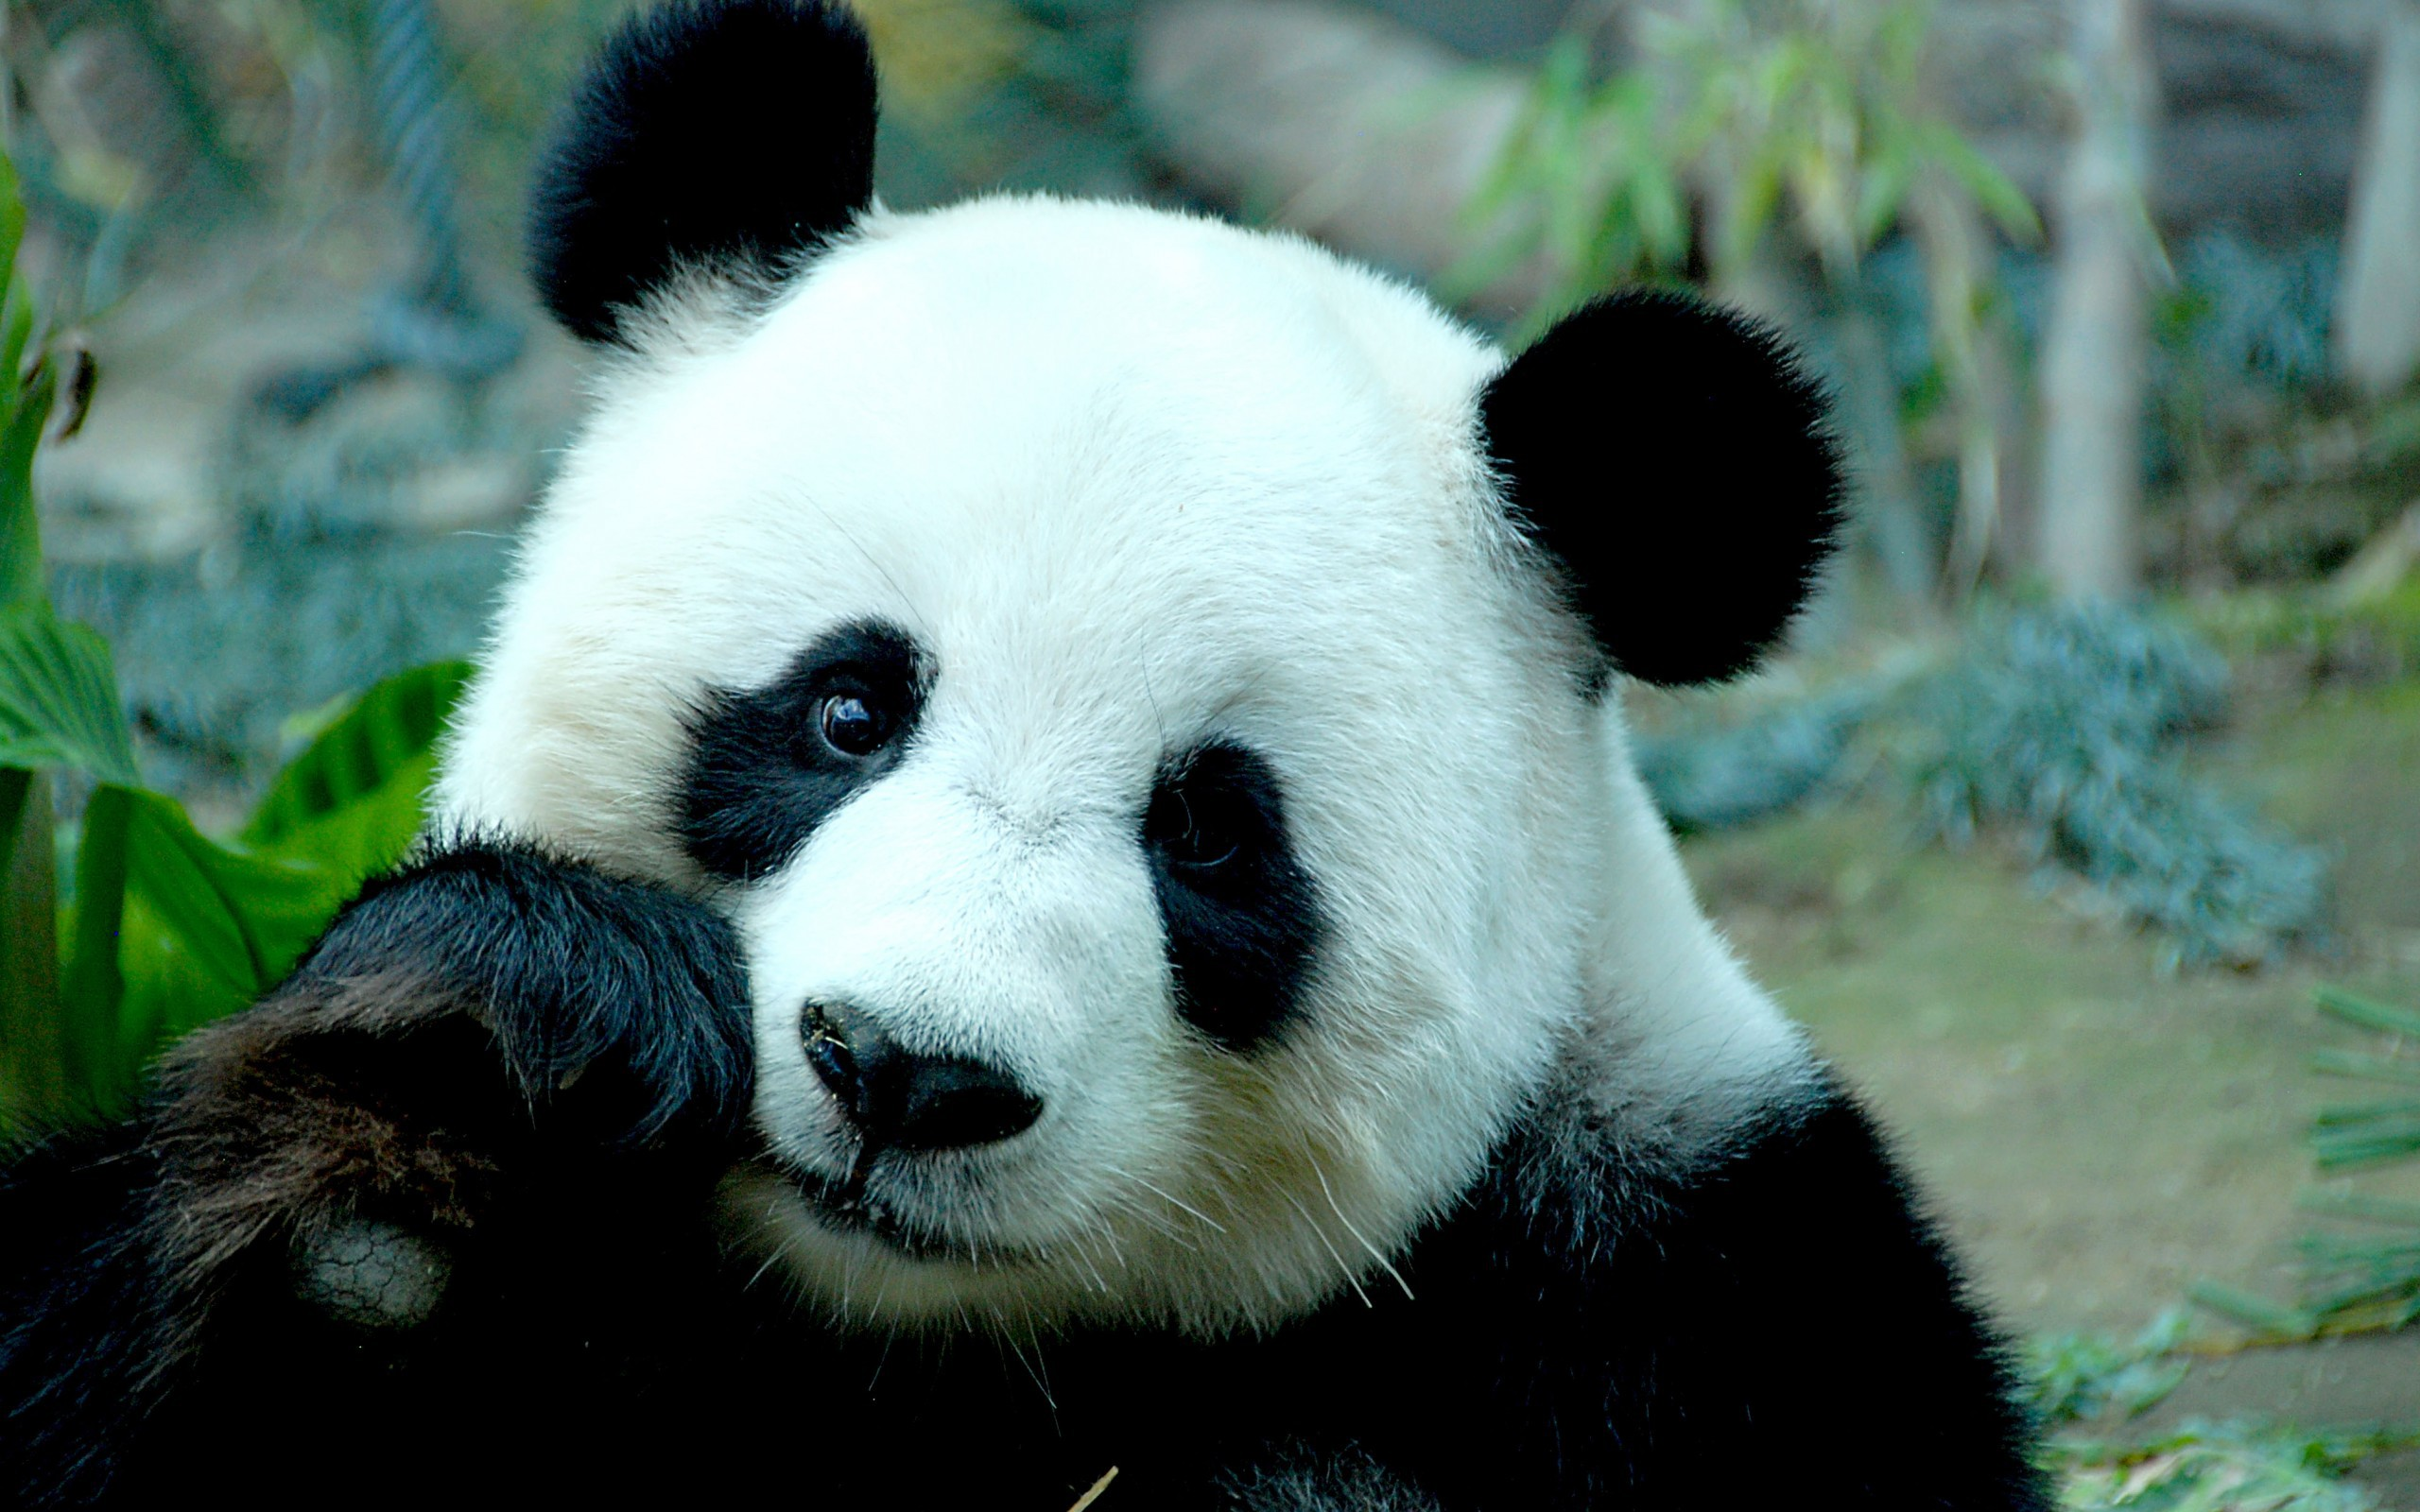 32212 download wallpaper Animals, Pandas screensavers and pictures for free